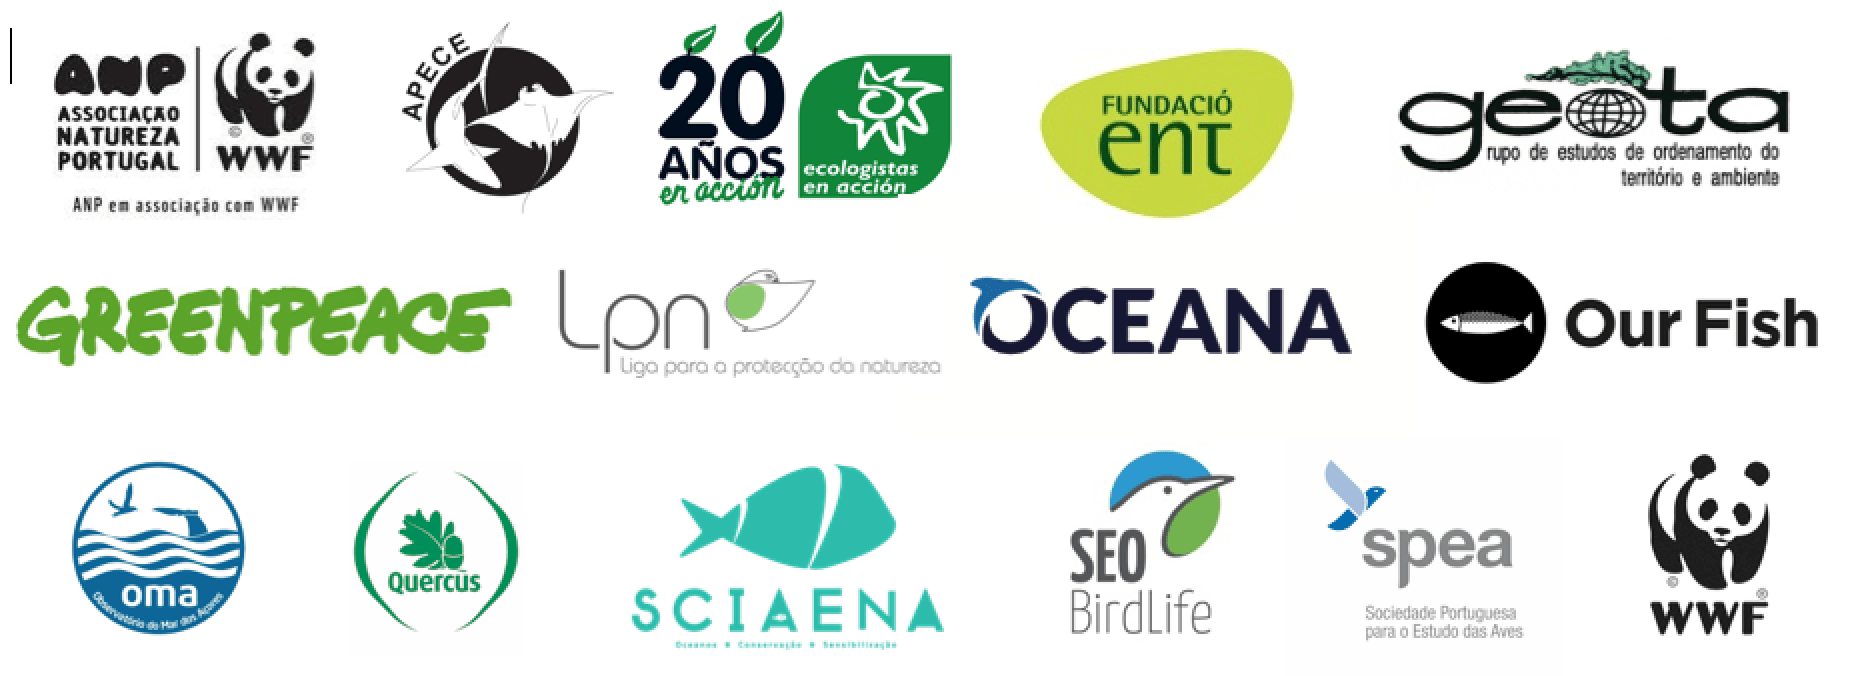 Iberian marine environmental organizations meet in Lisbon to join forces for healthy oceans and sustainable fisheries